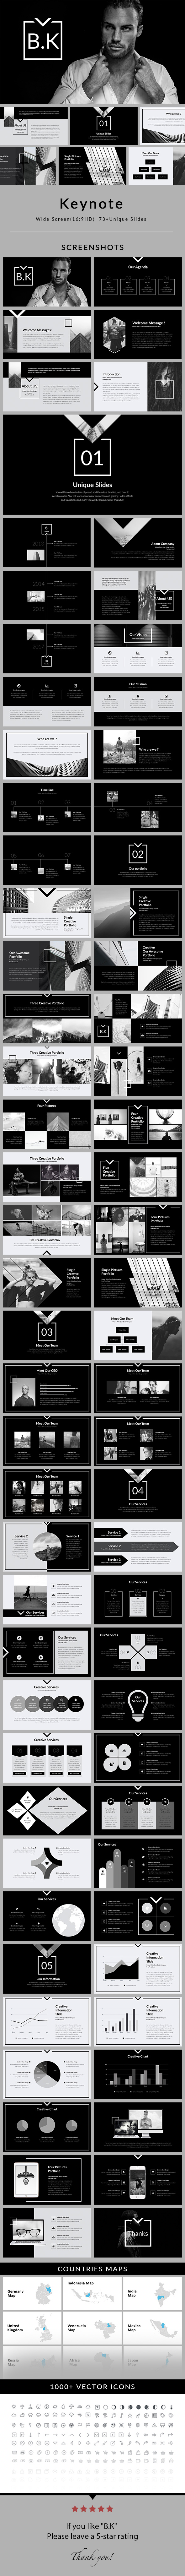 B.K - Keynote Presentation Template - Creative Keynote Templates